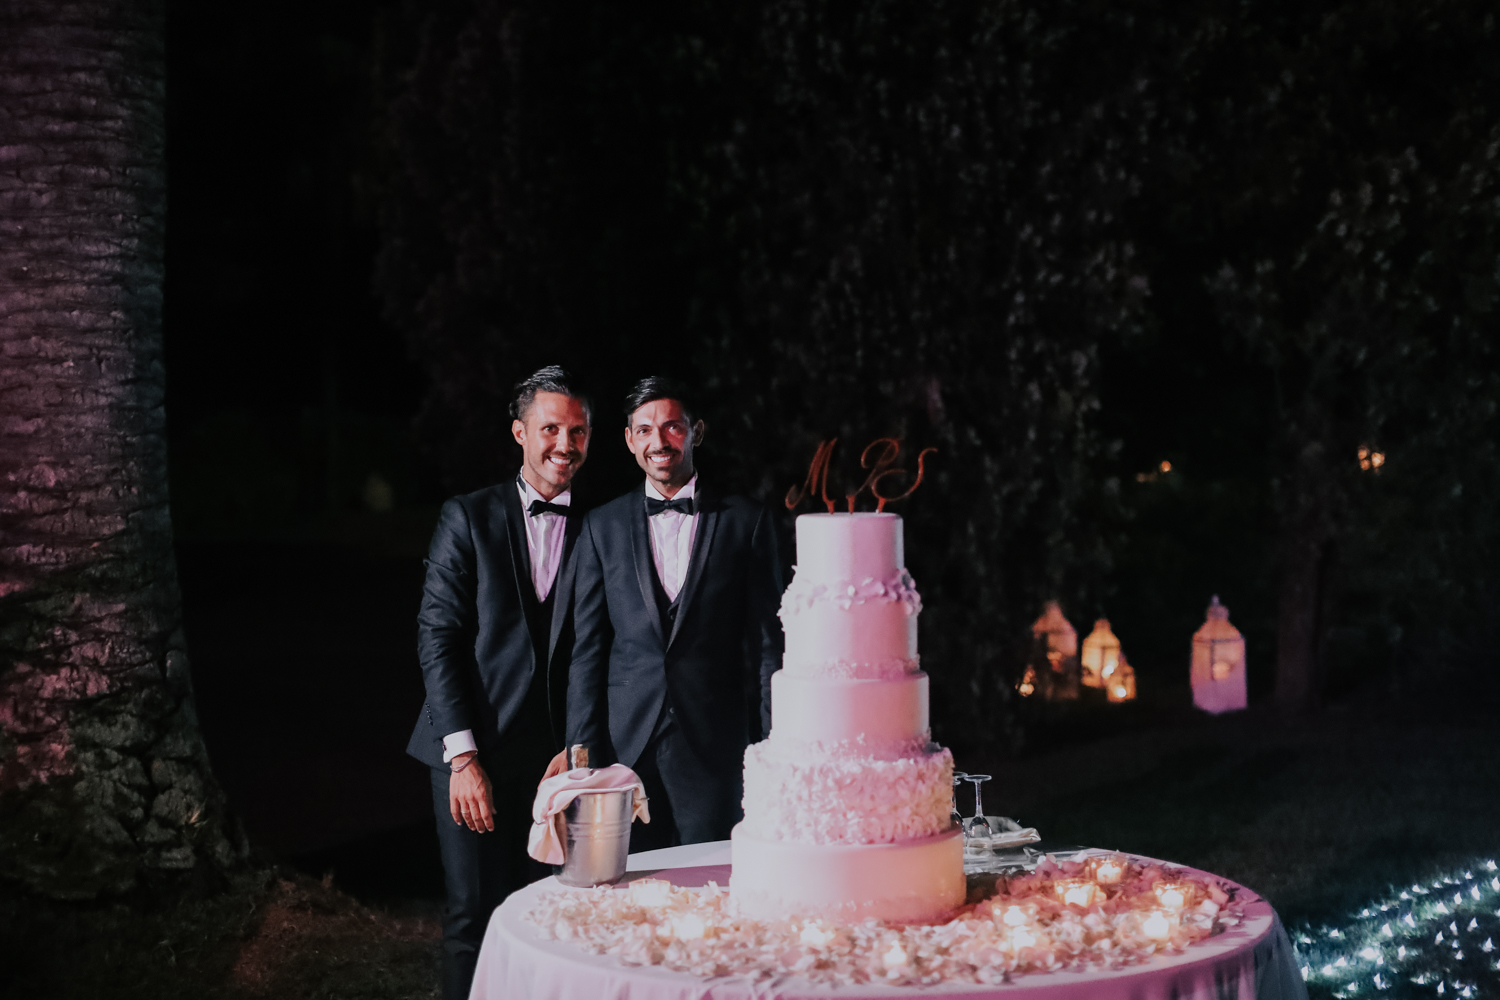 https://www.weddingamalfi.com/wp-content/uploads/Alessandro-and-Diego-wedding-cake-and-candles.jpg